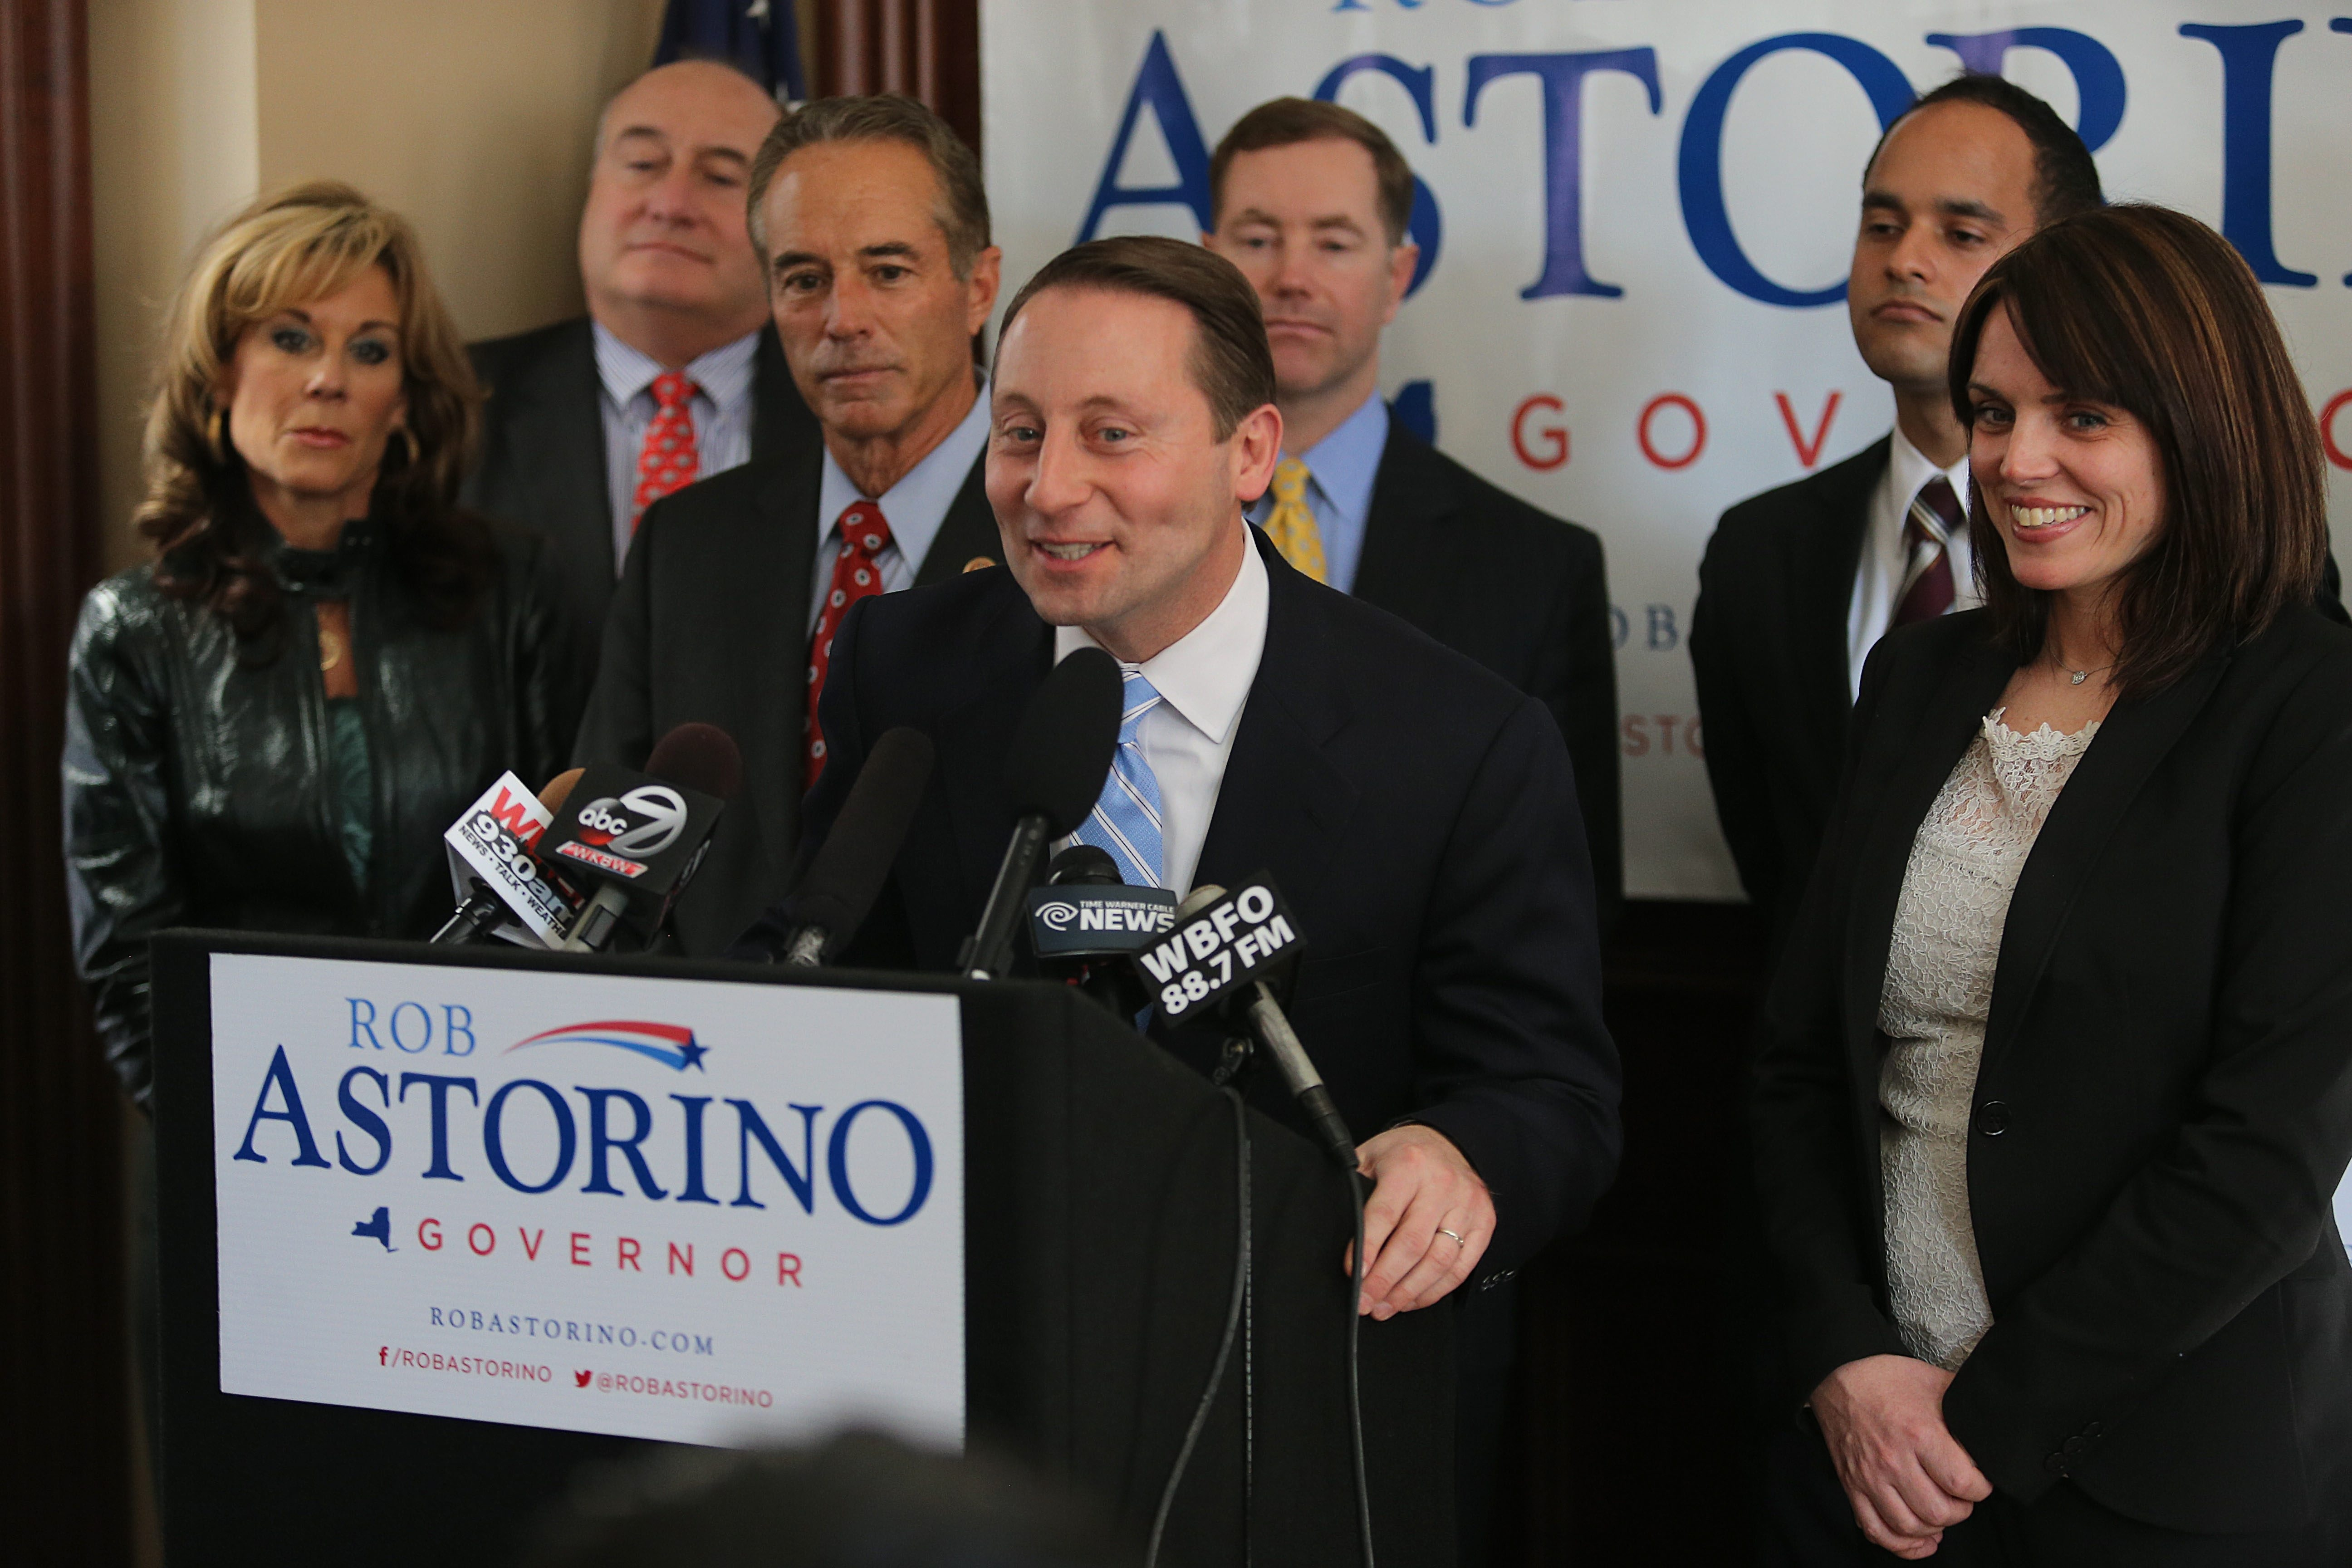 Westchester County Executive Rob Astorino speaks about his decision to run for New York State governor Thursday at the Zeptomerix Corp. building in Buffalo, as his wife, Sheila McCluskey, right, looks on. Zeptometrix owner Rep. Chris Collins, R-Clarence, is at Astorino's right.